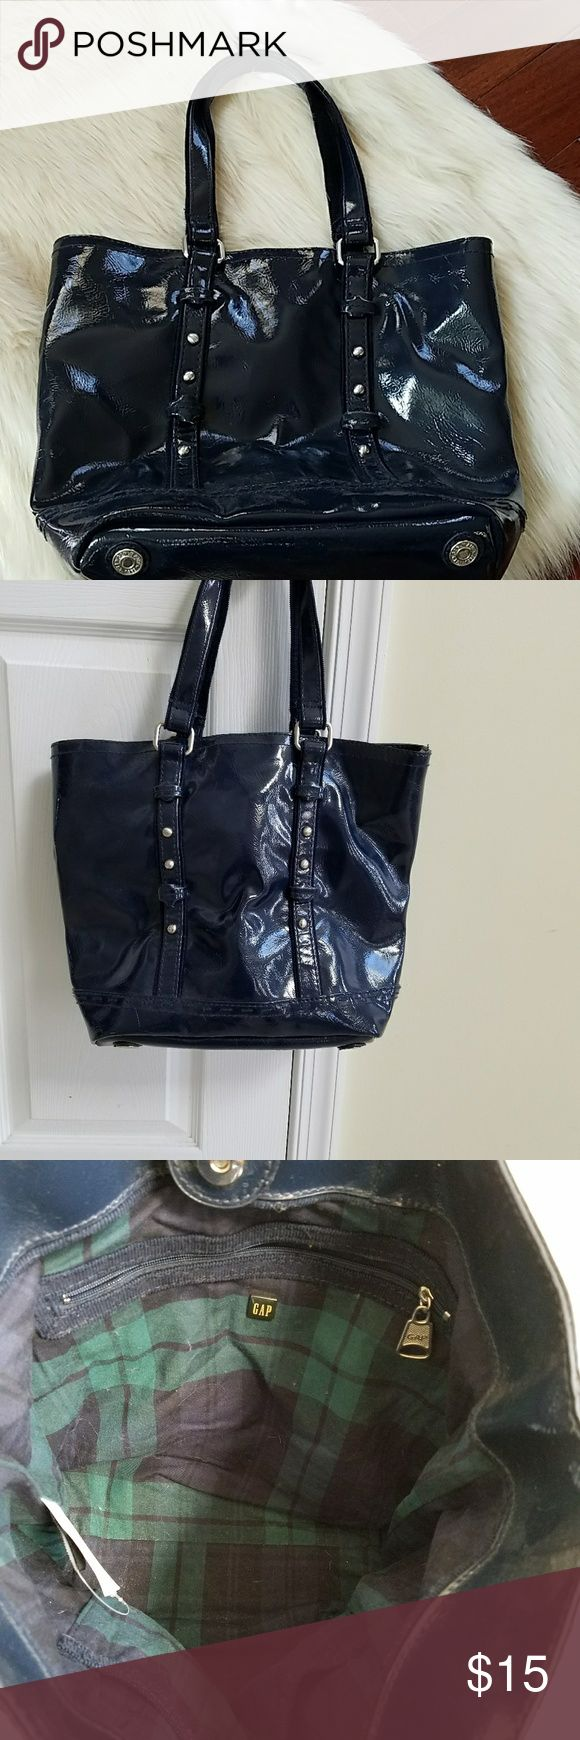 Beautiful Patent leather like Gap bag. NAVY BLUE GAP Patent leather like bag. Body made of polyvinyl chloride coating with backing fabric. Lining 100% cotton. No stains or scratches. NAVY blue GAP Bags Totes